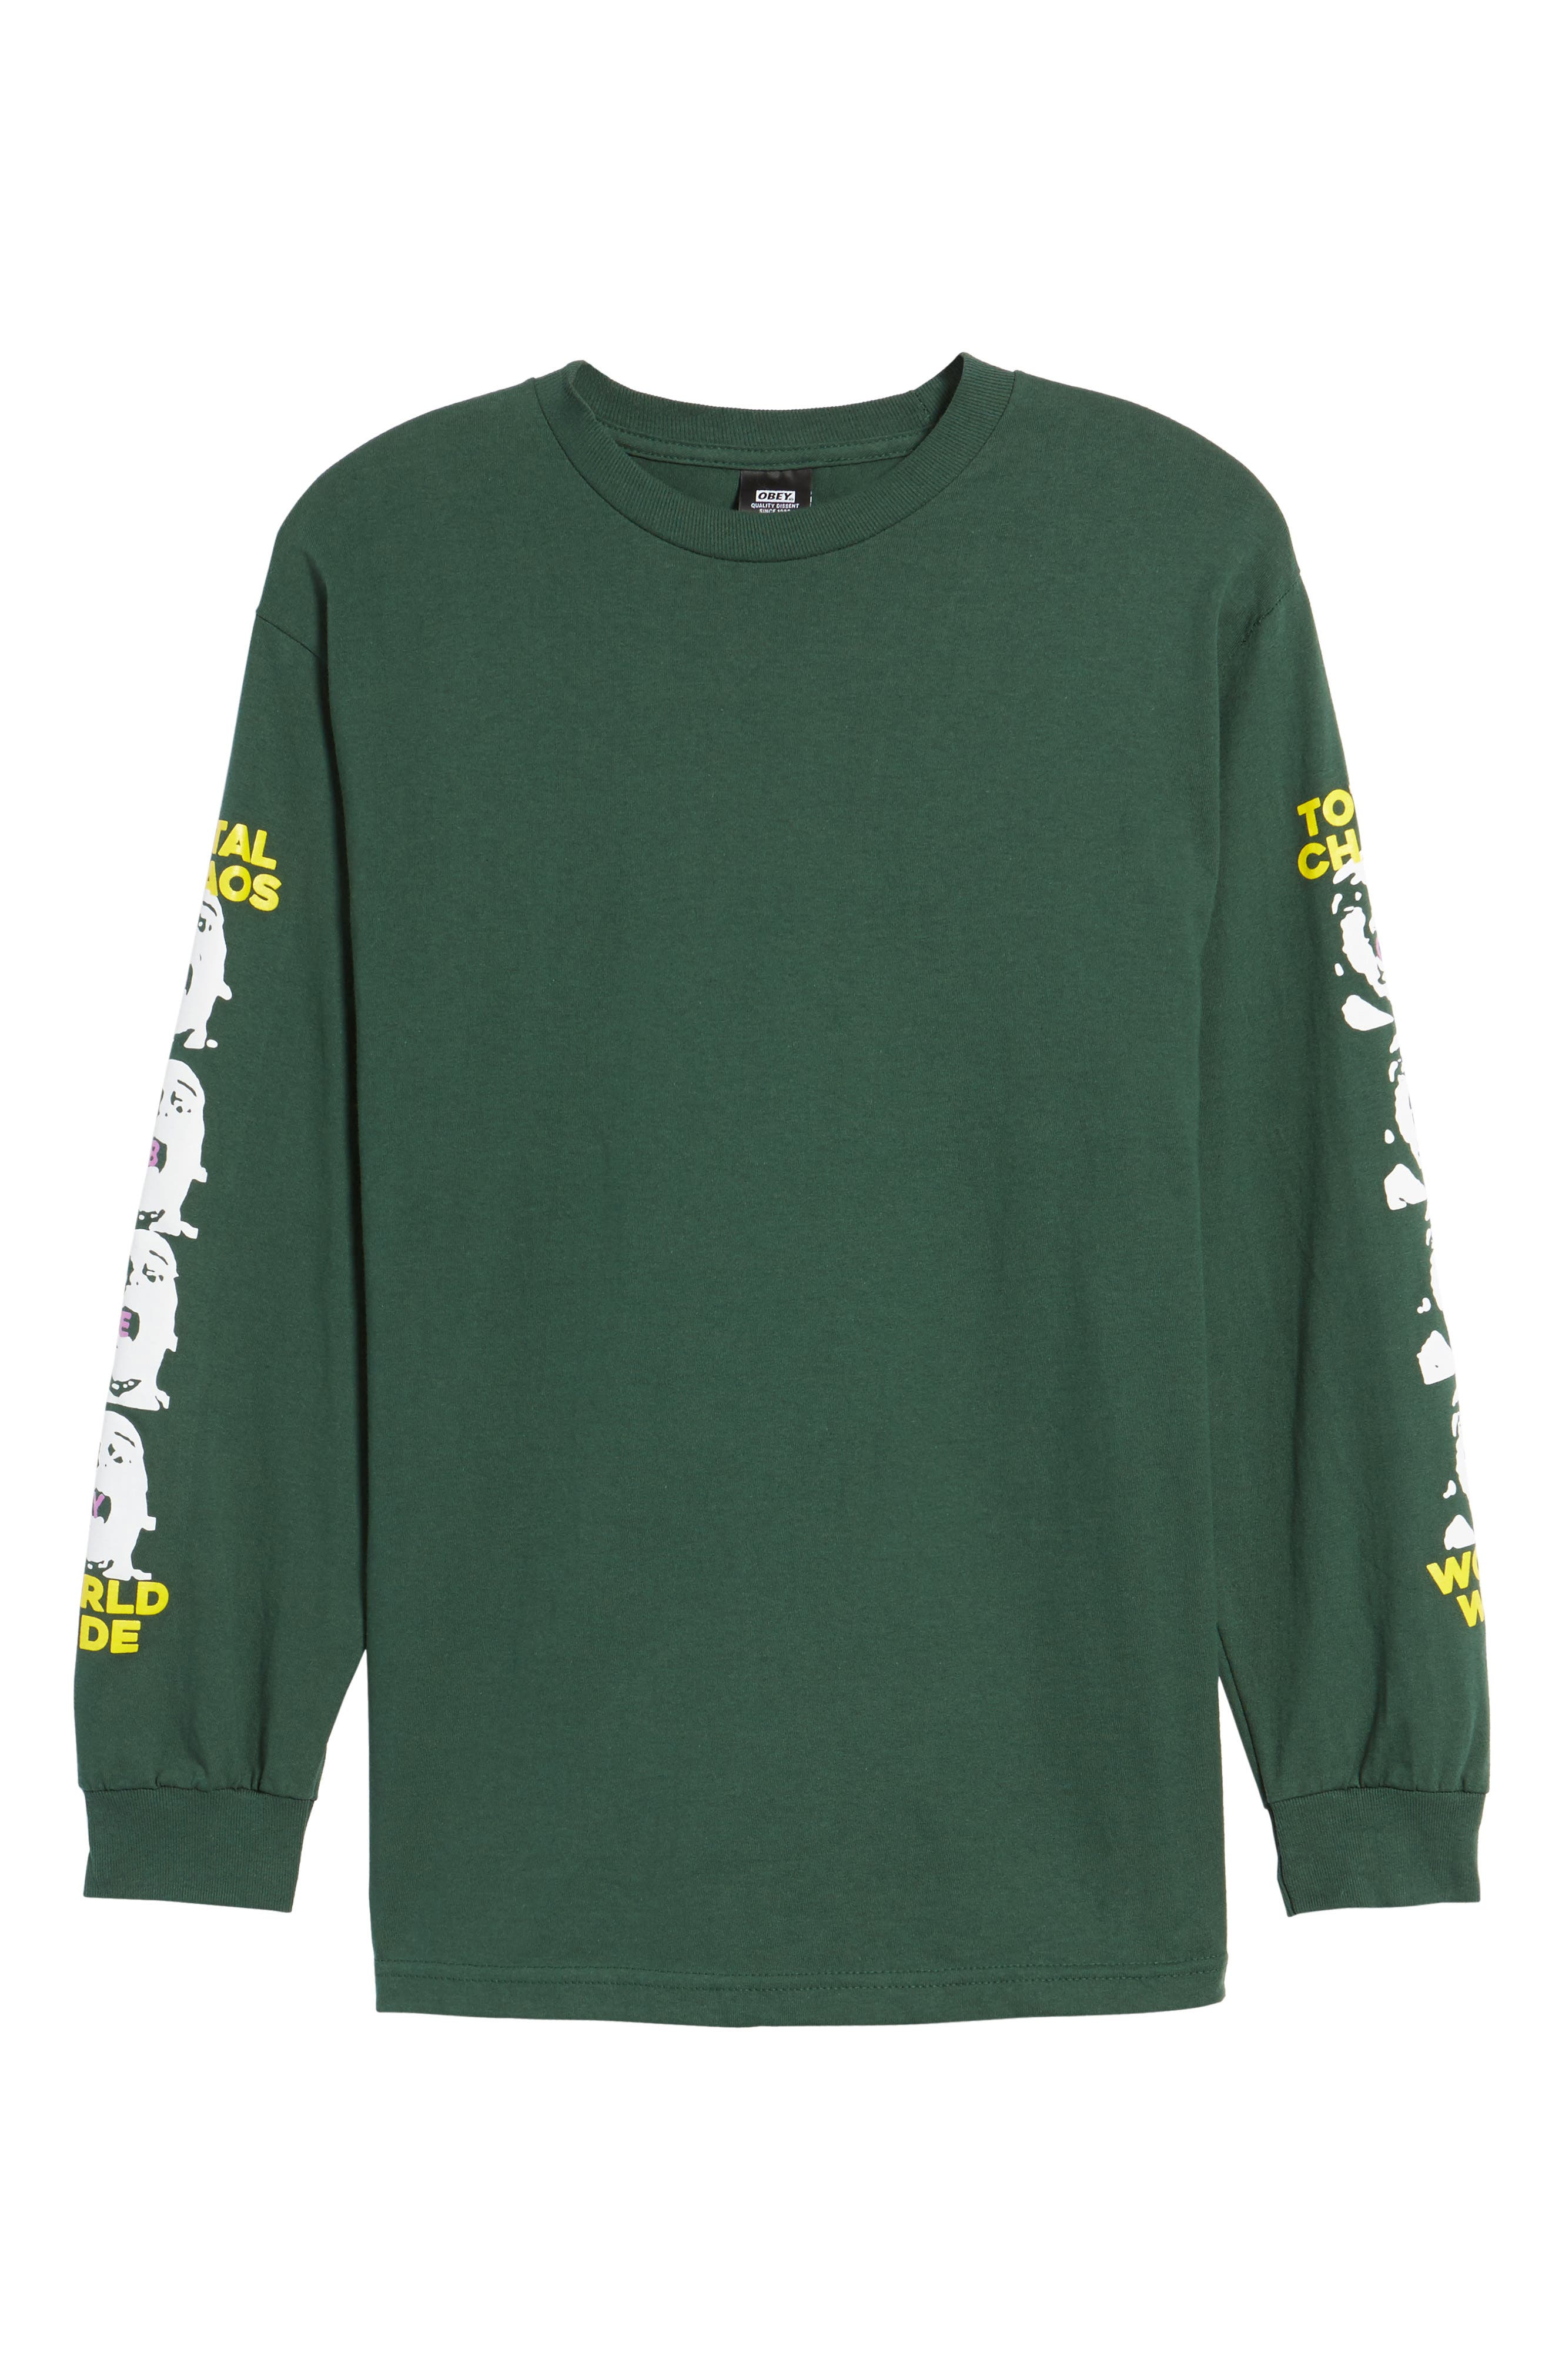 Total Chaos T-Shirt,                             Alternate thumbnail 6, color,                             Forrest Green